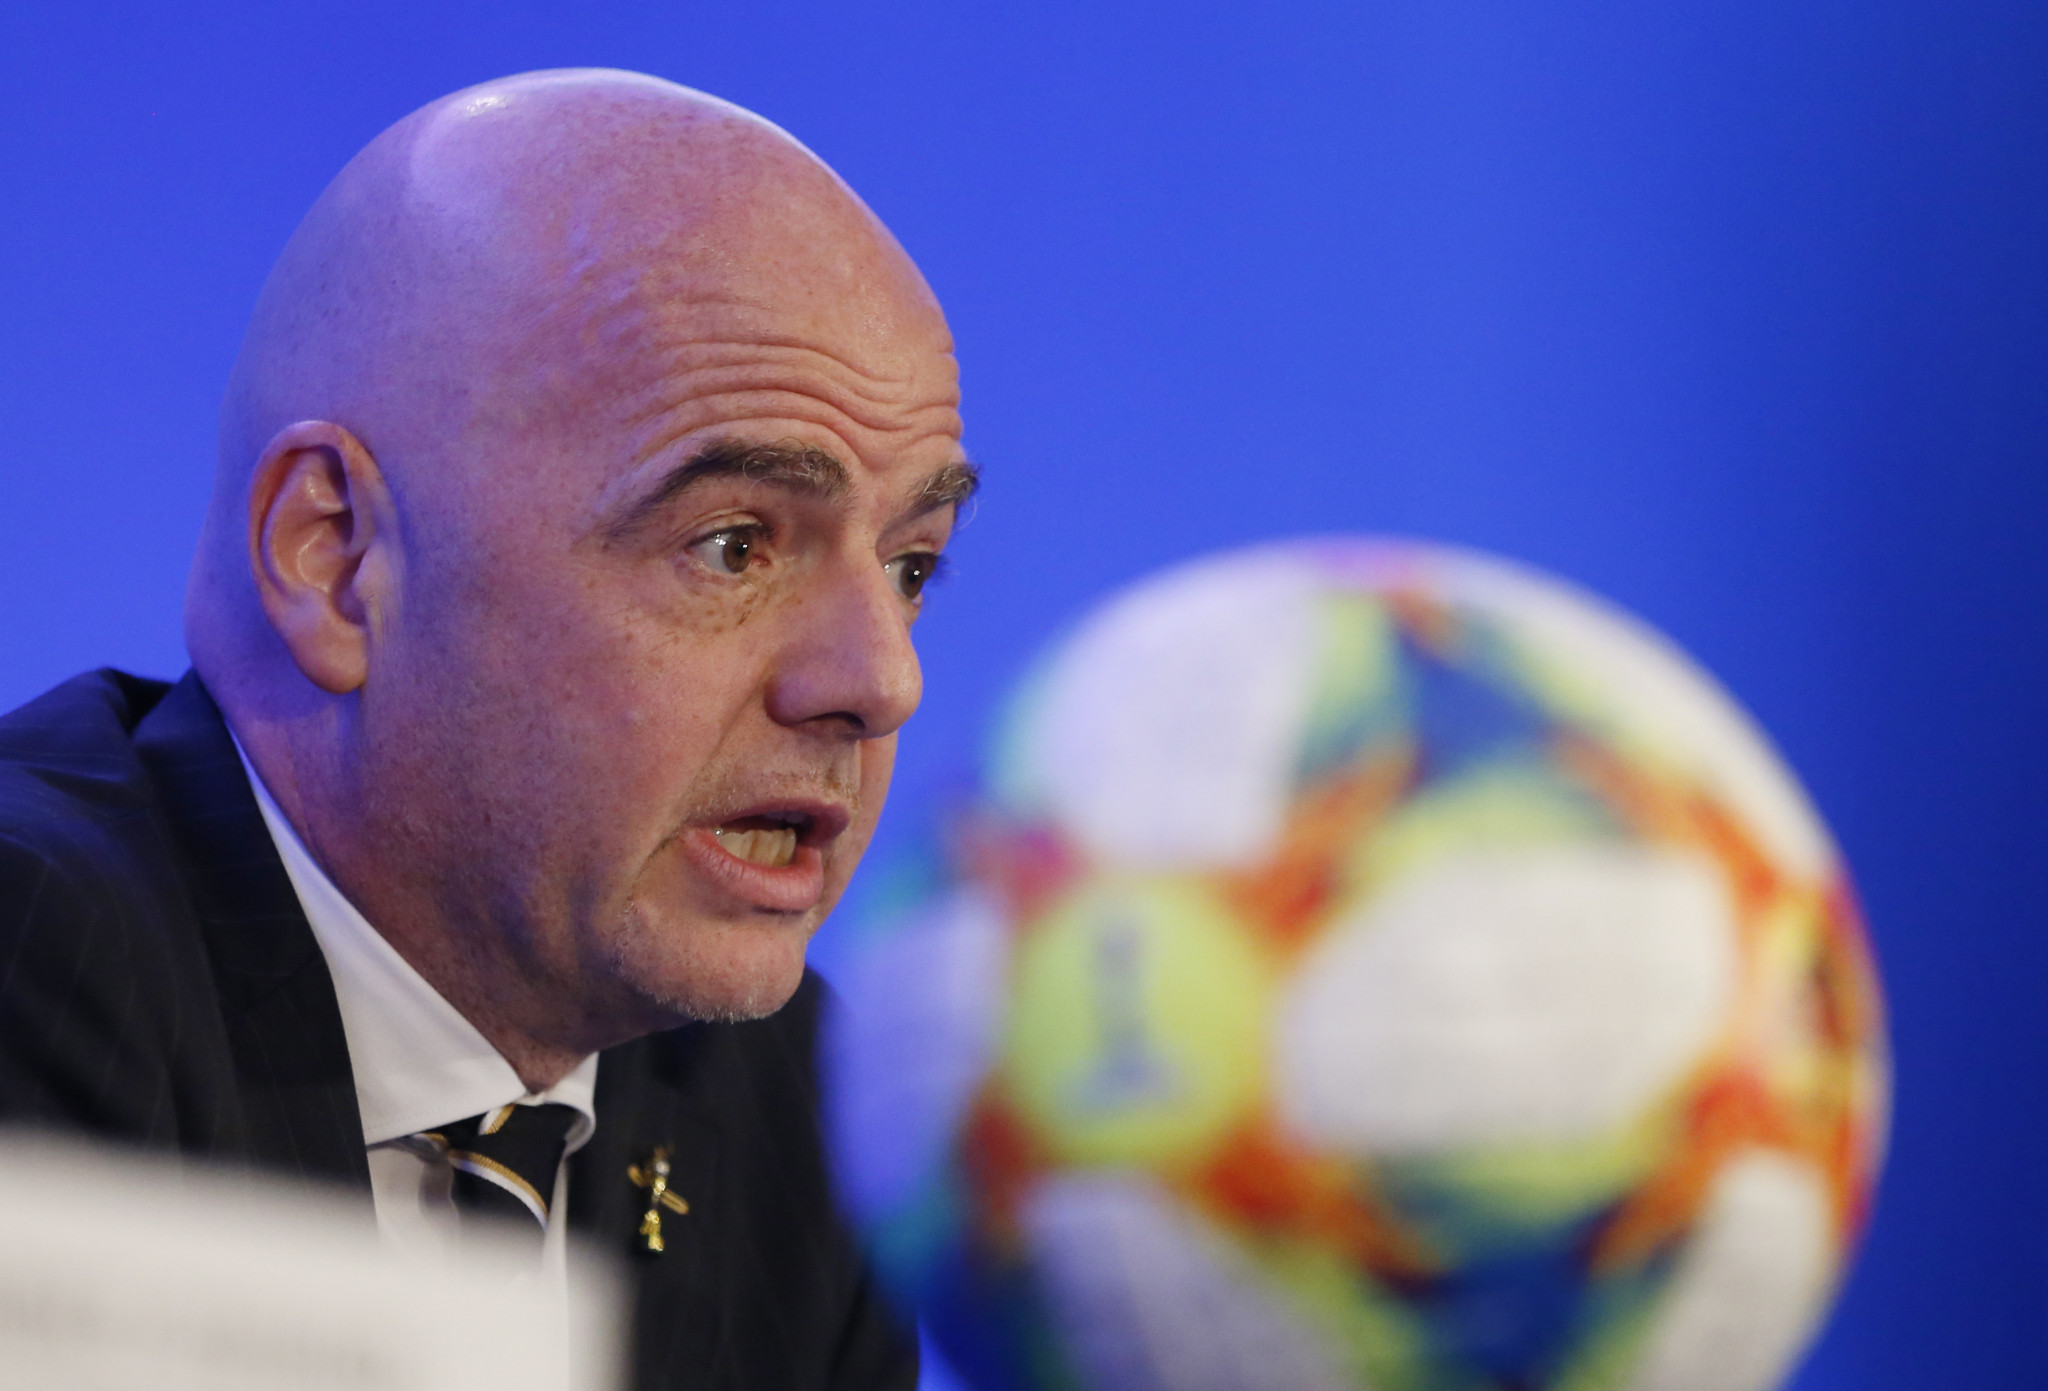 FIFA President Gianni Infantino has condemned recent racist incidents in football ©Getty Images